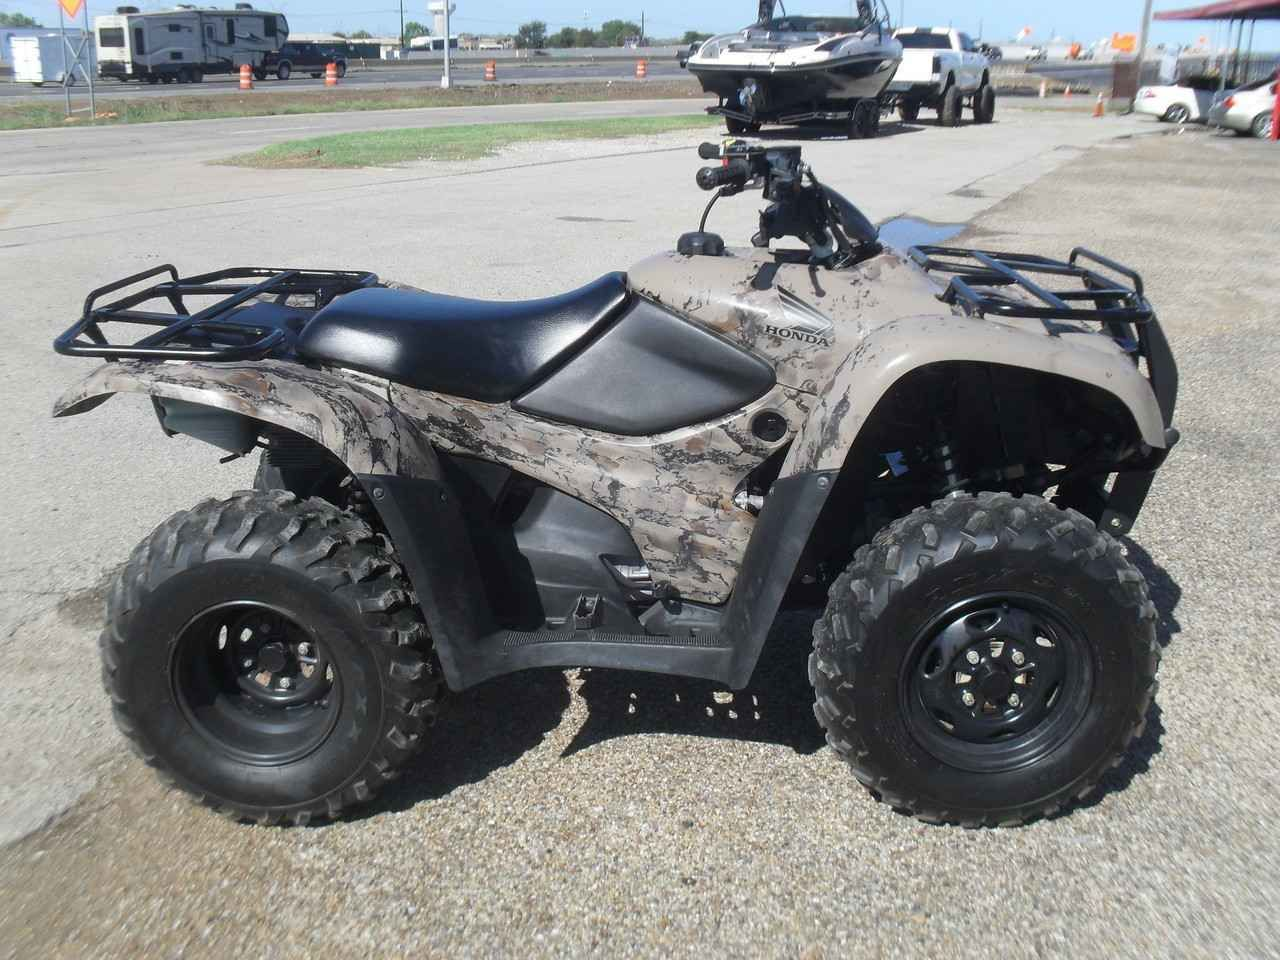 used 2013 honda fourtrax rancher 420 4x4 atvs for sale in texas 2013 honda rancher 420 4x4 atv. Black Bedroom Furniture Sets. Home Design Ideas